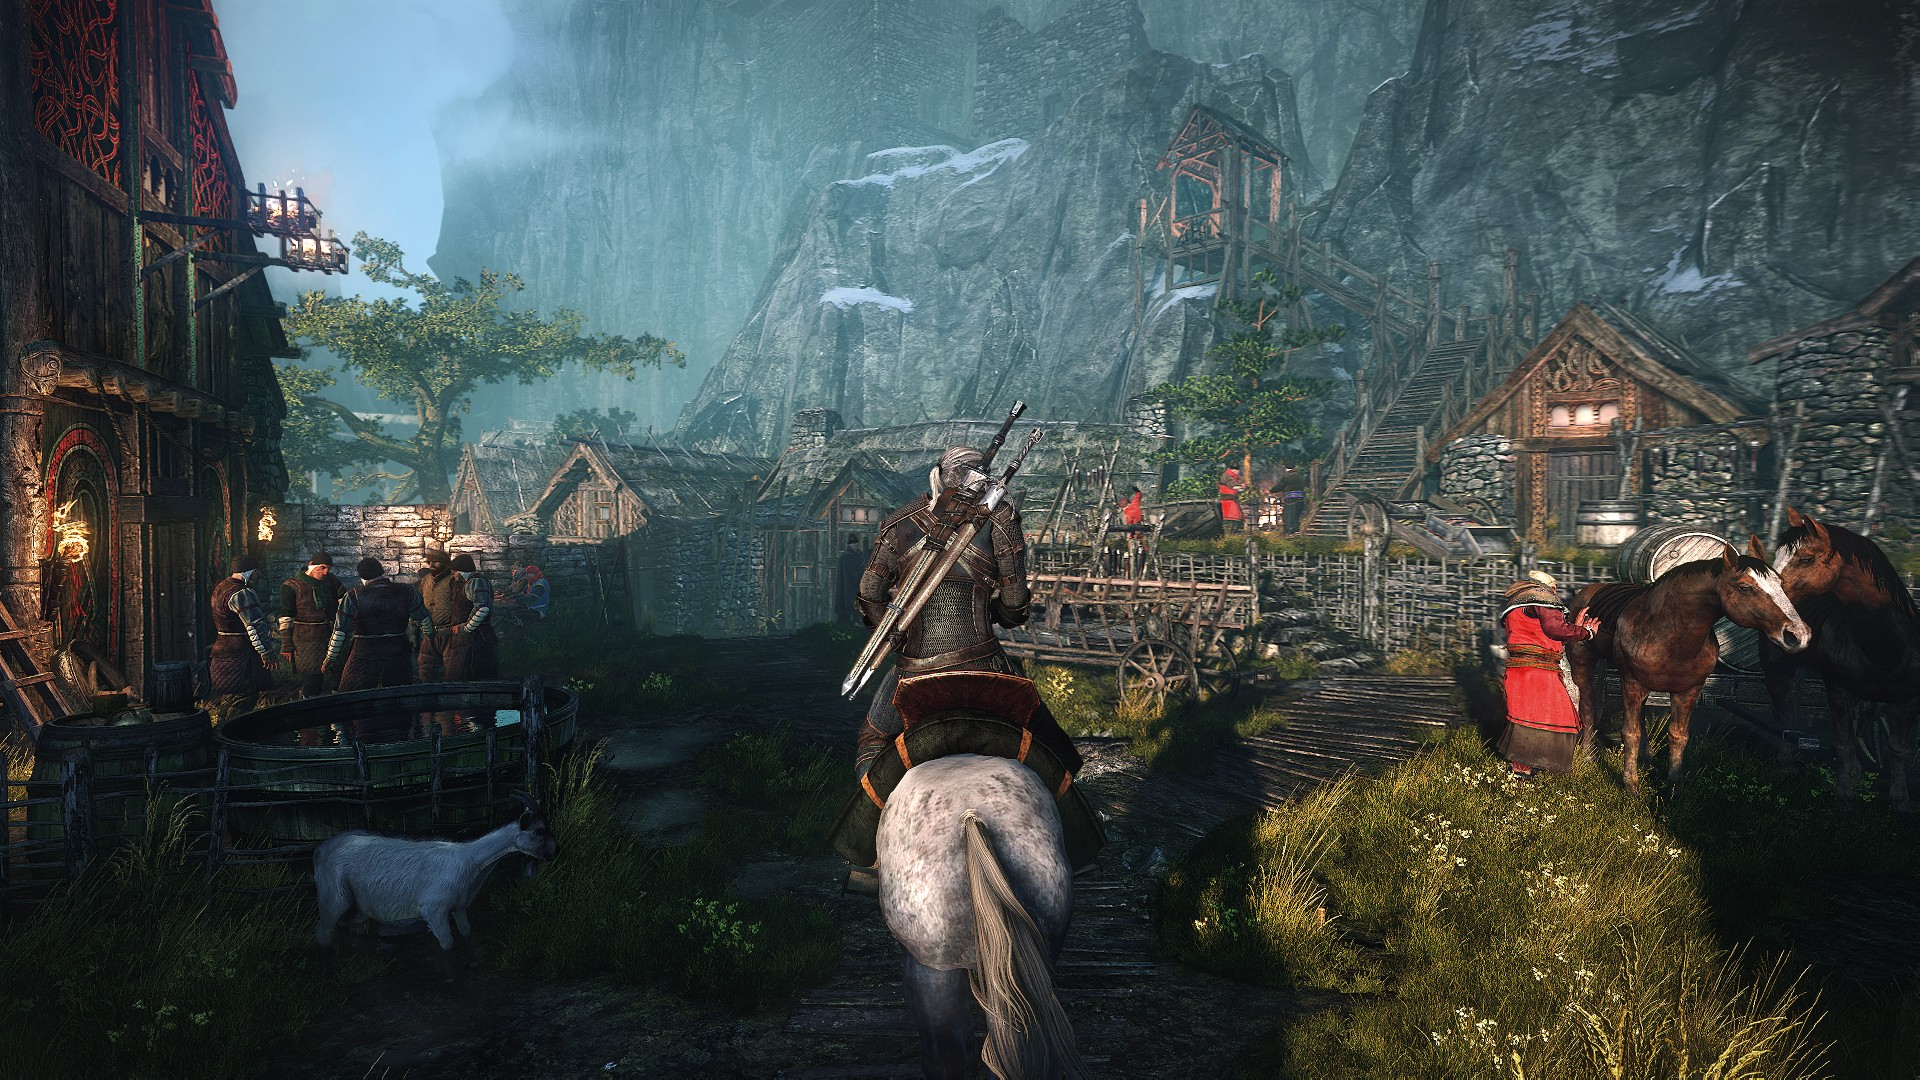 Witcher 3 Delayed Again